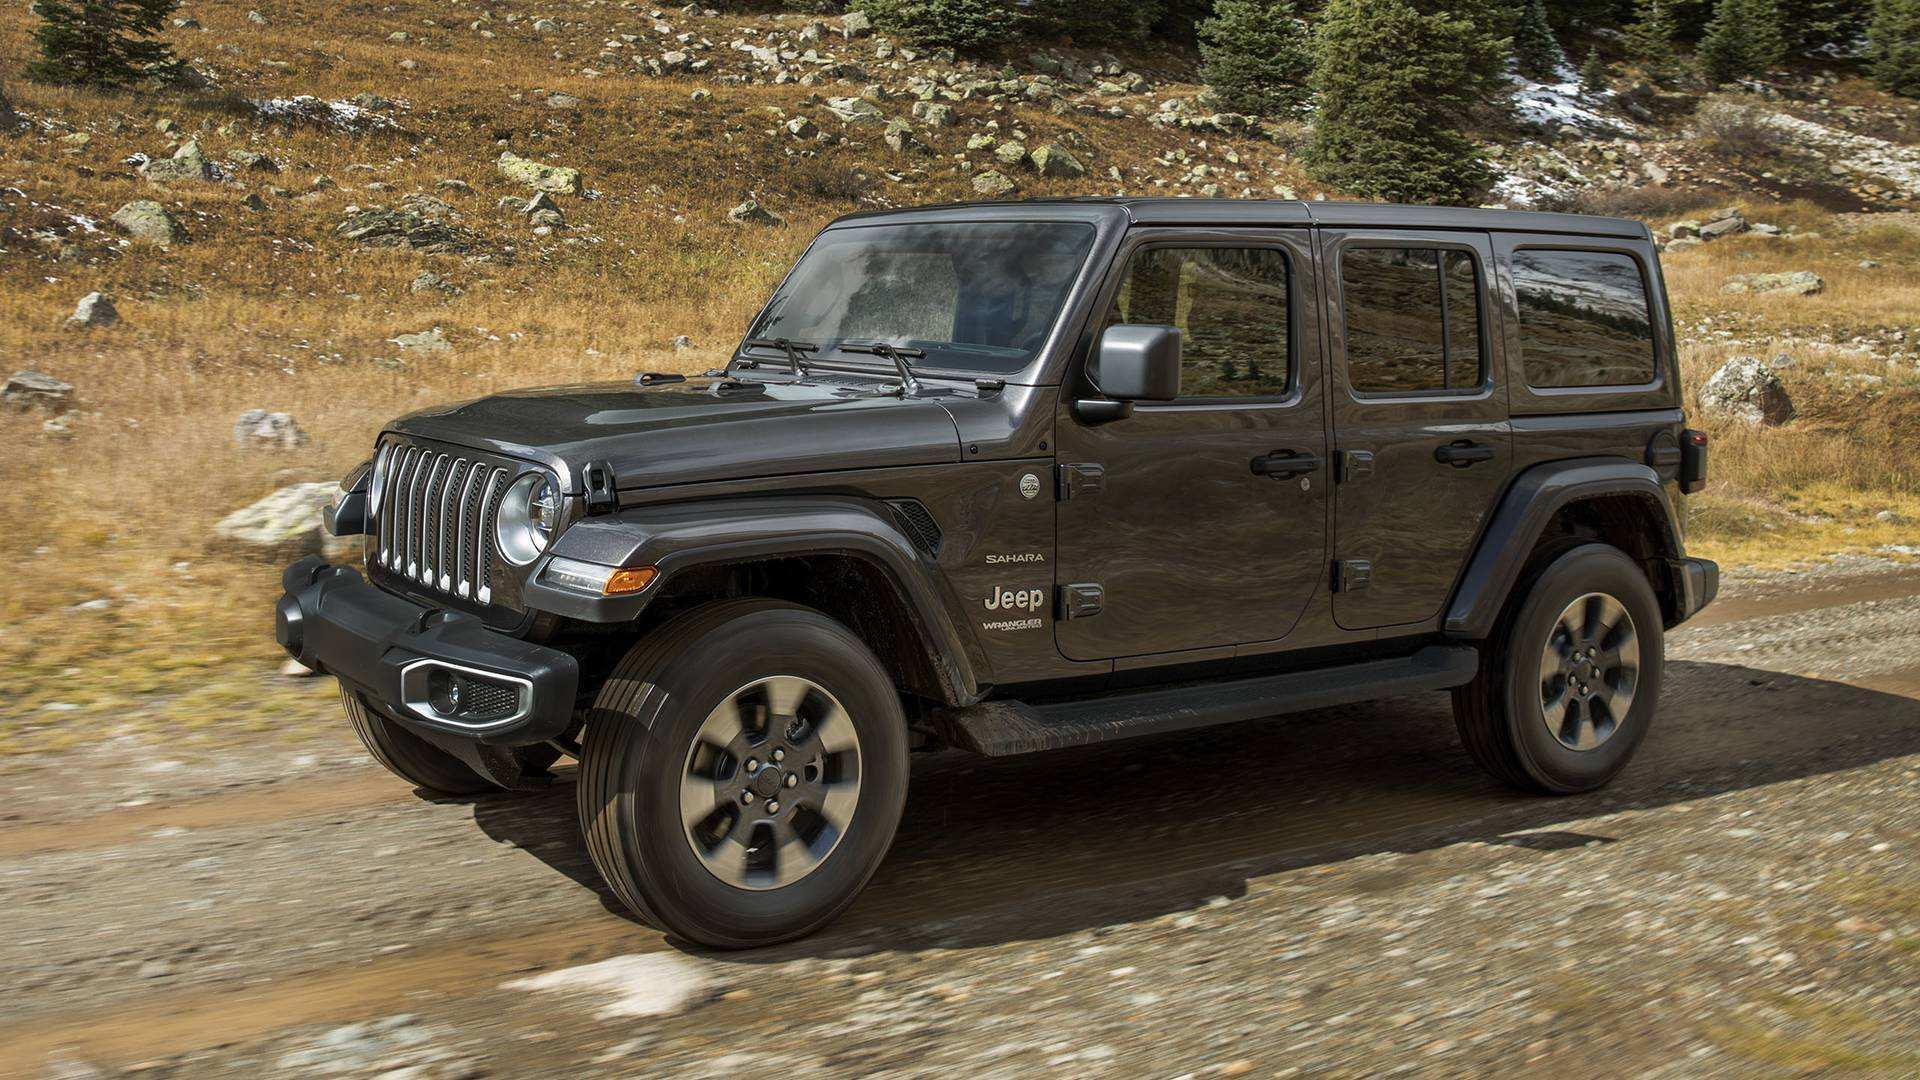 49 The Best Jeep Hybrid 2020 Speed Test